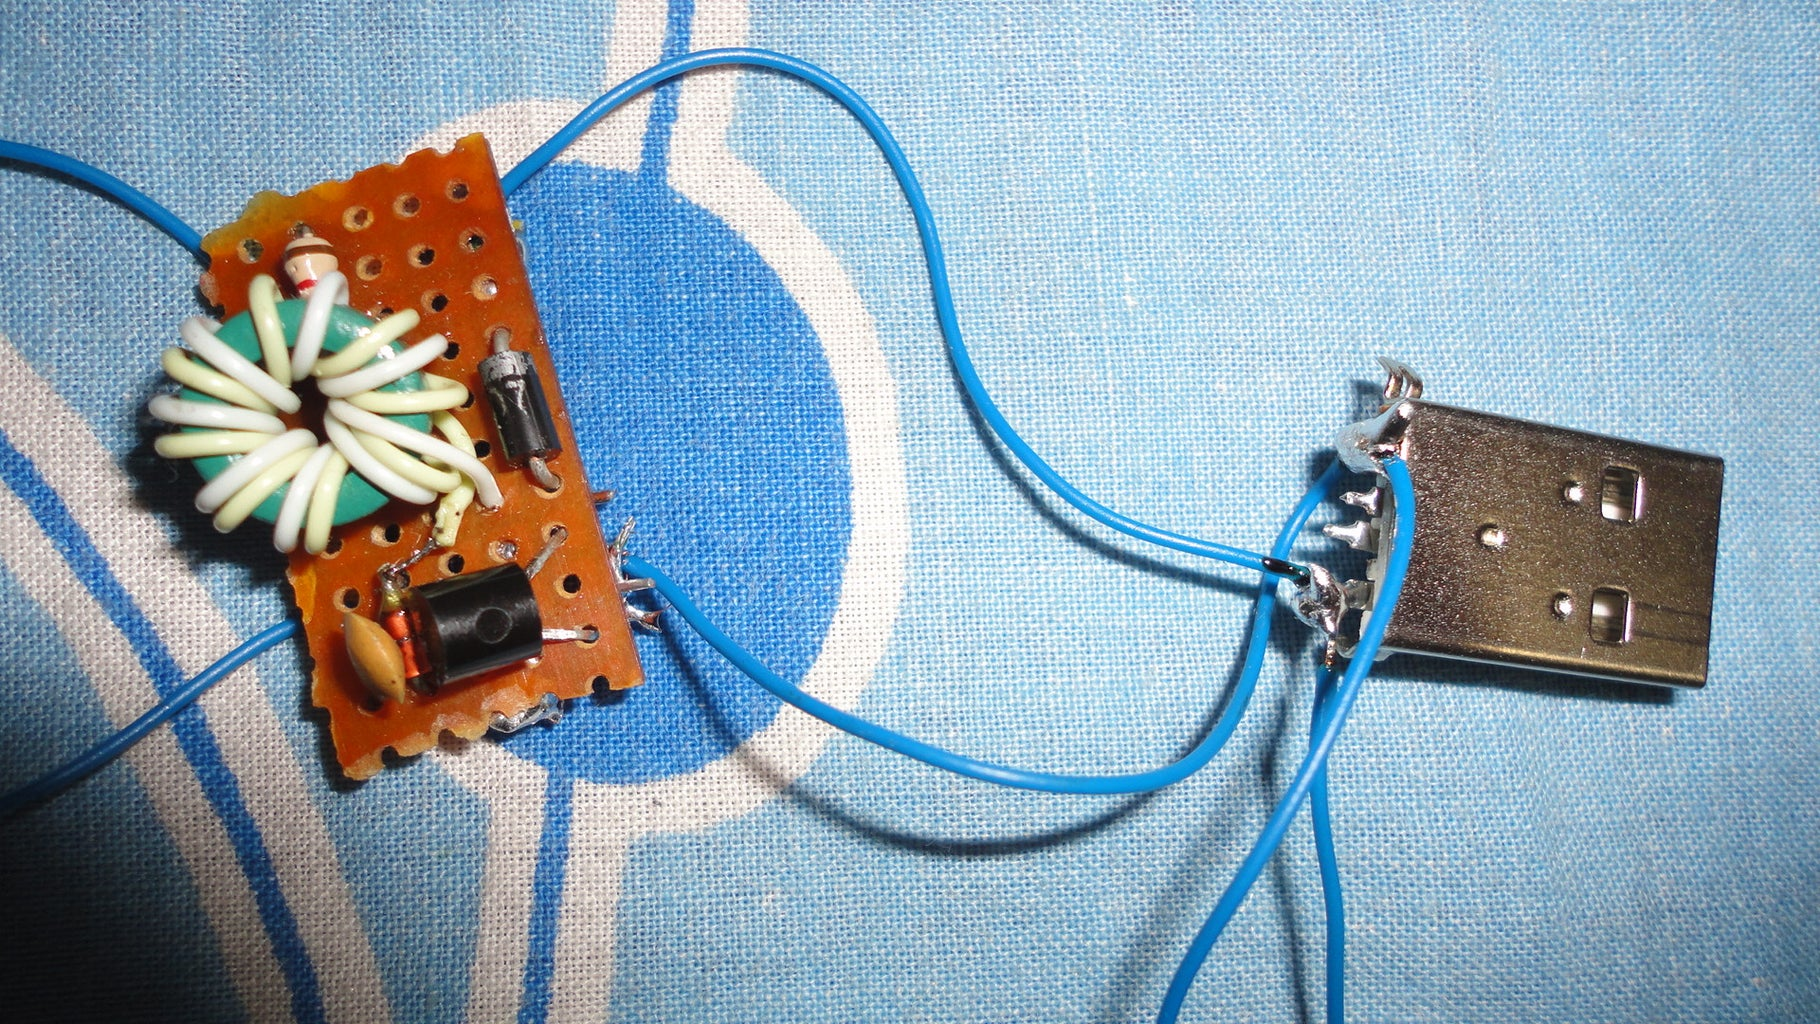 Completing Circuit